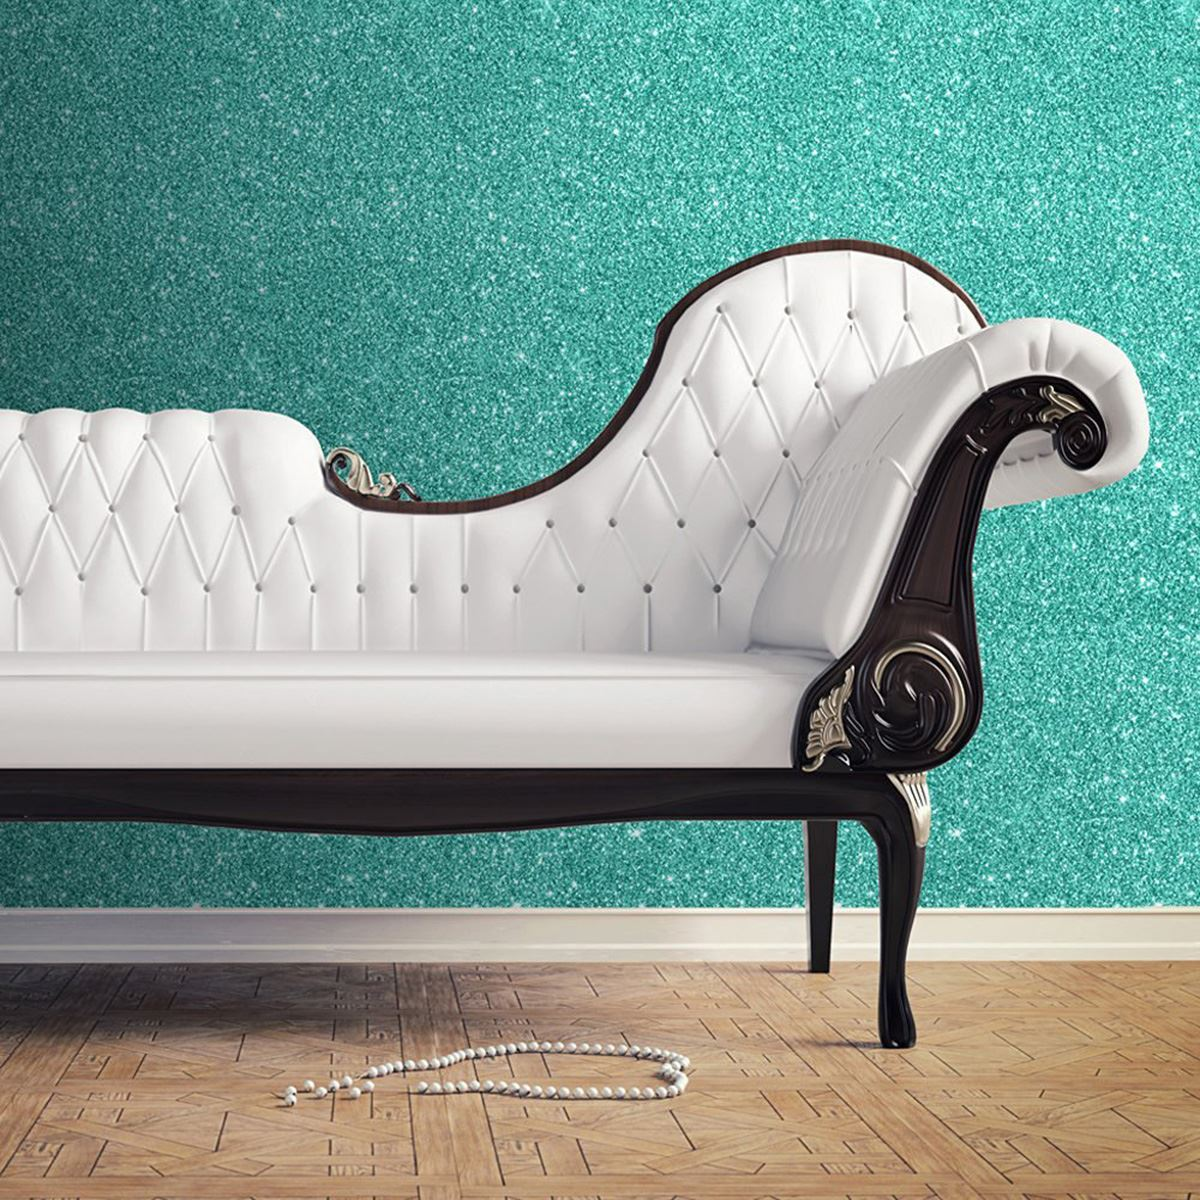 Details about HOT TEAL TEXTURED SPARKLE WALLPAPER - MURIVA 701355 NEW